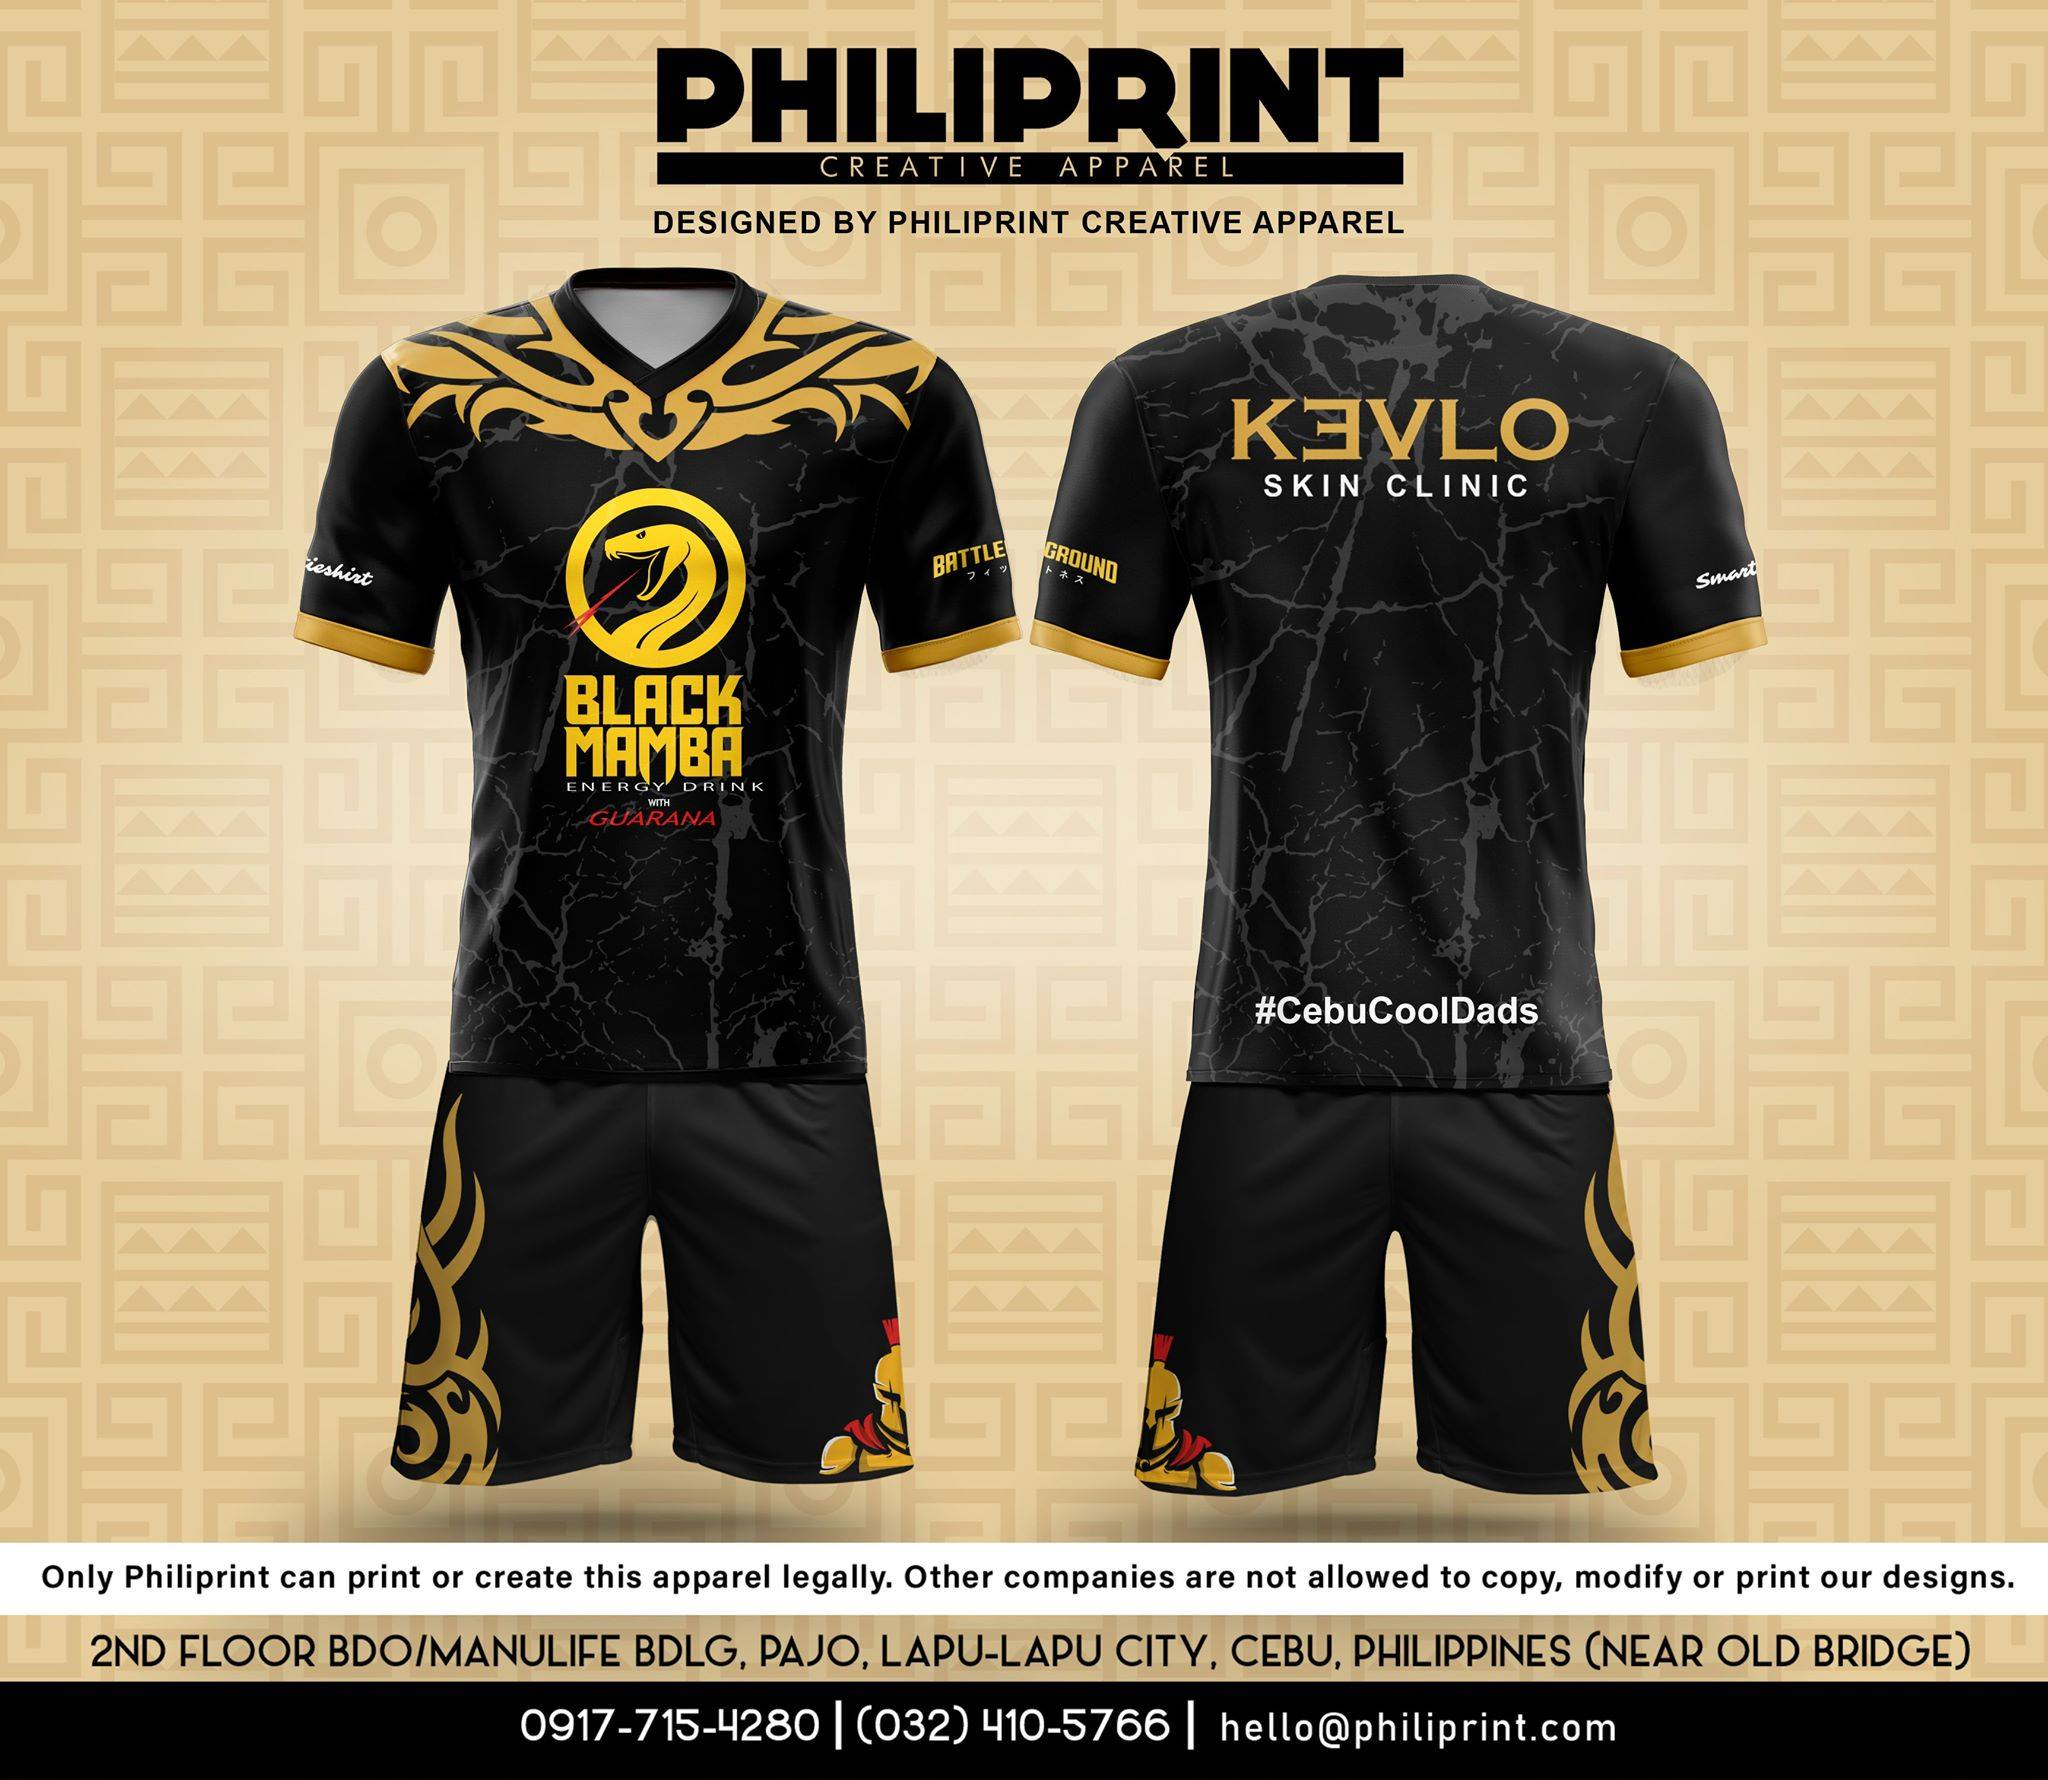 Philiprint Football Jersey Full Sublimation BLACK MAMBA KEVLO SKIN CLINIC